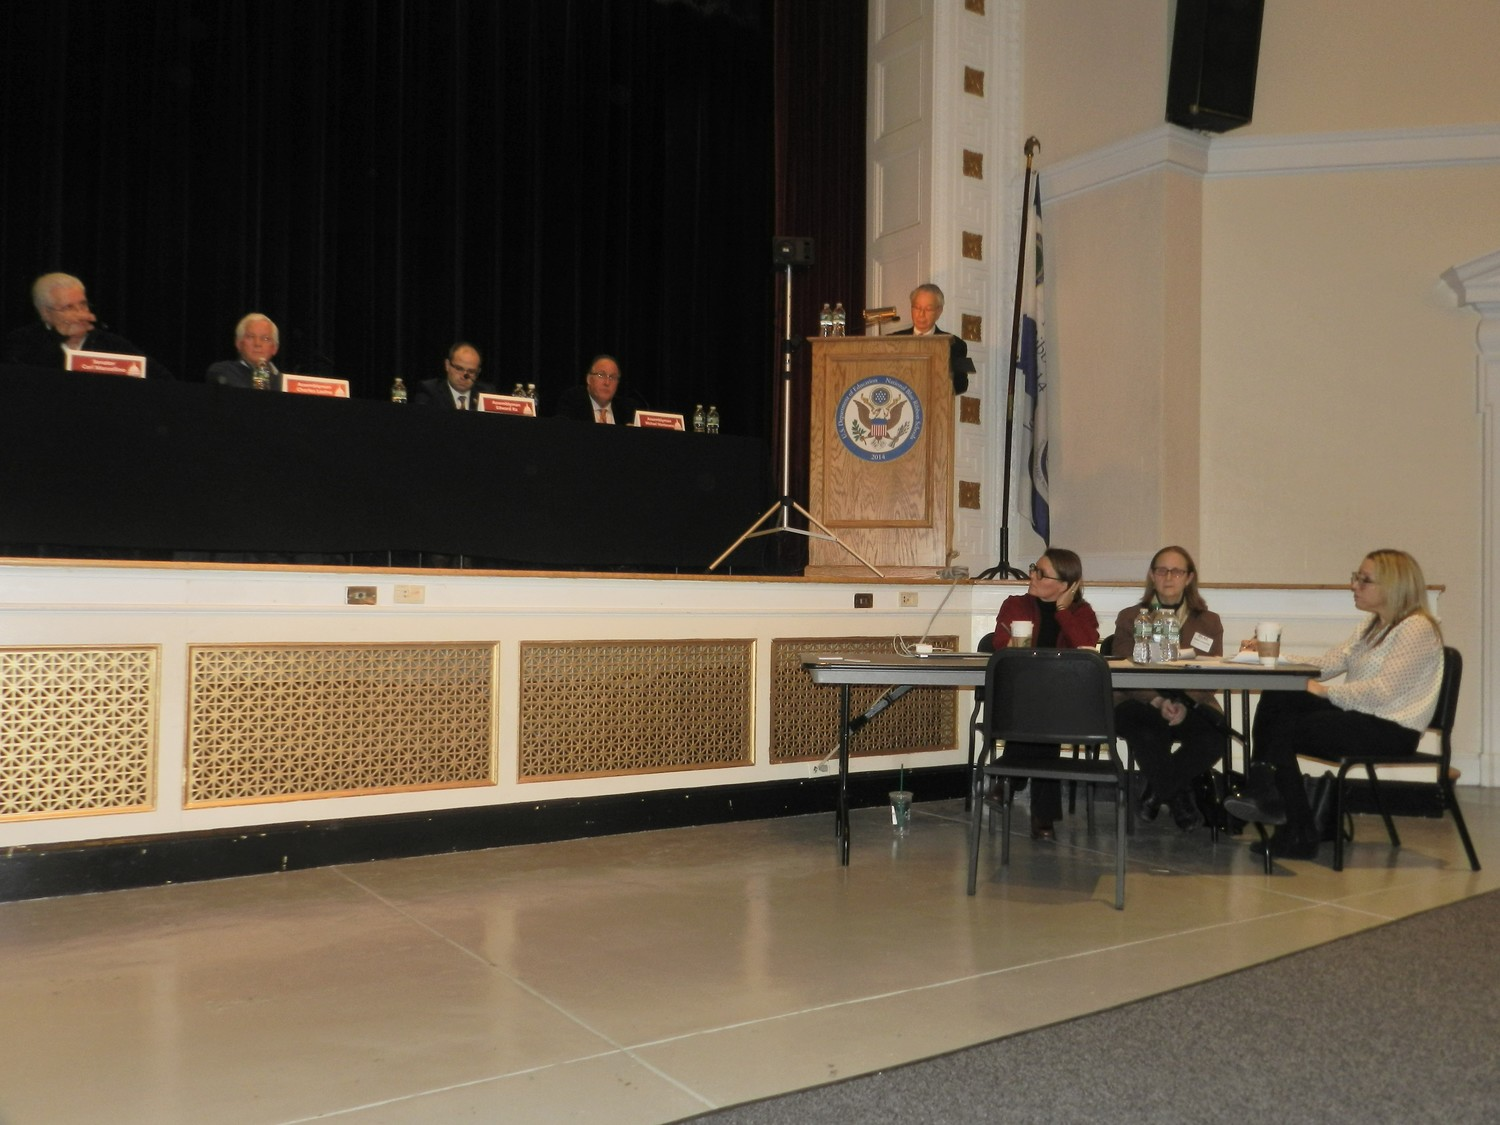 Local lawmakers discussed key issues affecting the North Shore schools, such as the tax cap, opt-out rates, and New York American Water.